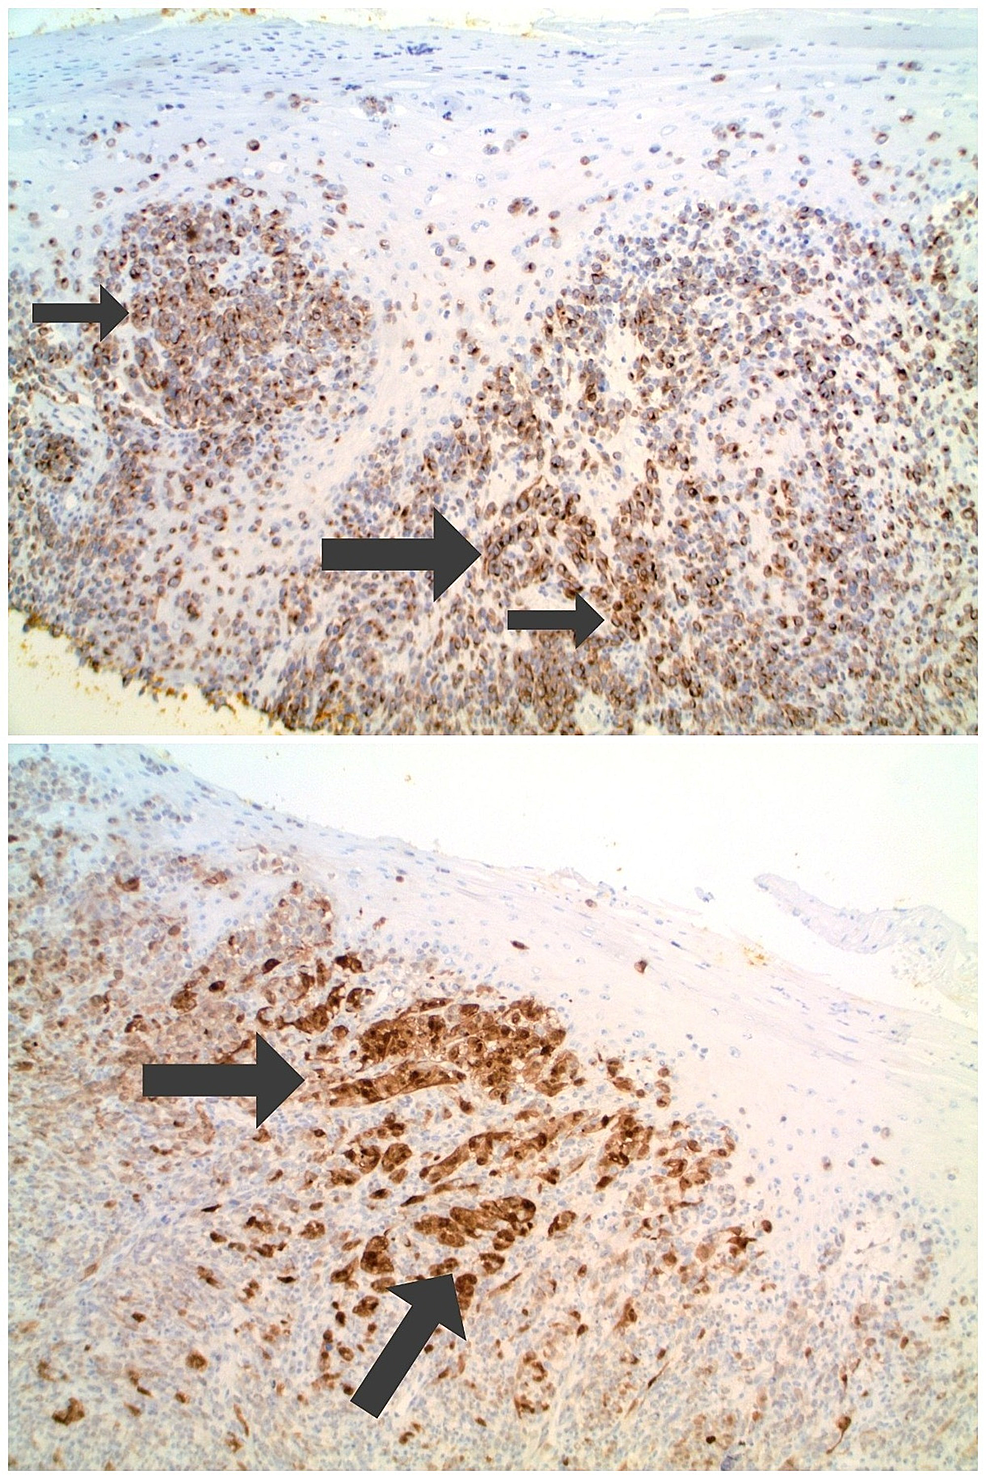 Microscopic-examination-of-the-melanoma-associated-antigen-recognized-by-T-cells-1-(MART-1)-and-S100-immunoperoxidase-stained-nail-bed-biopsy-from-a-subungual-amelanotic-melanoma.